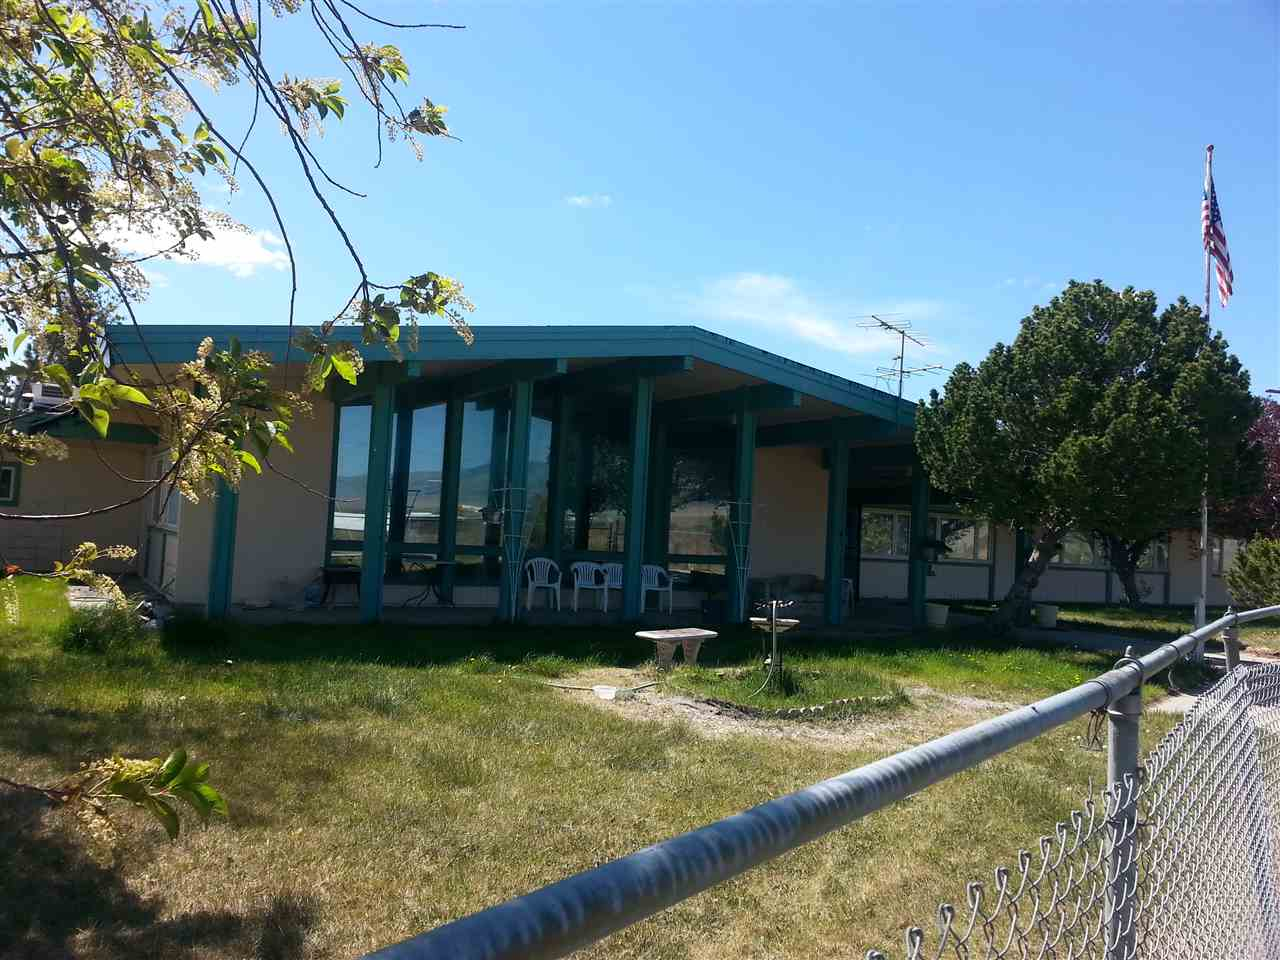 128 US Highway 12 E, Townsend, MT 59644